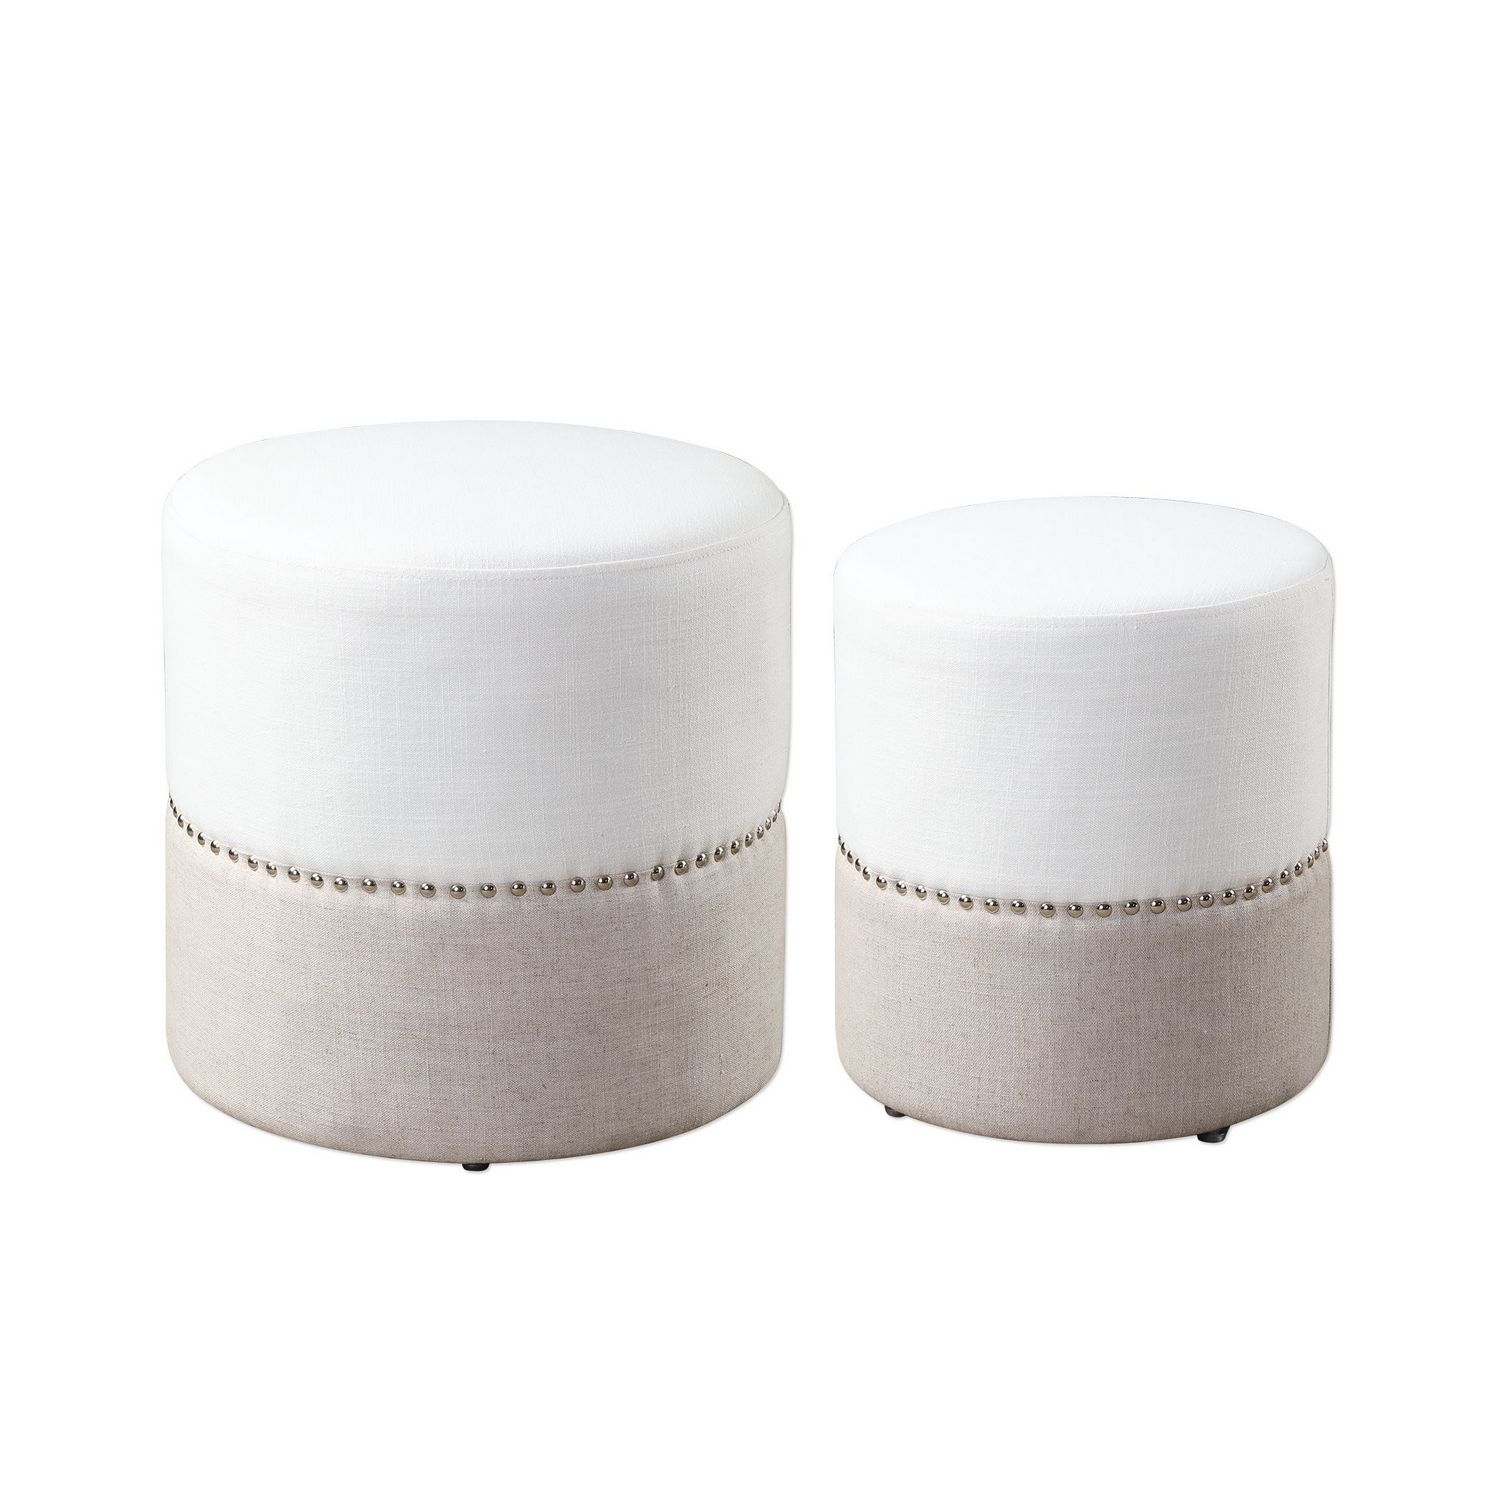 Uttermost Tilda Two-Toned Nesting Ottomans - Set of 2